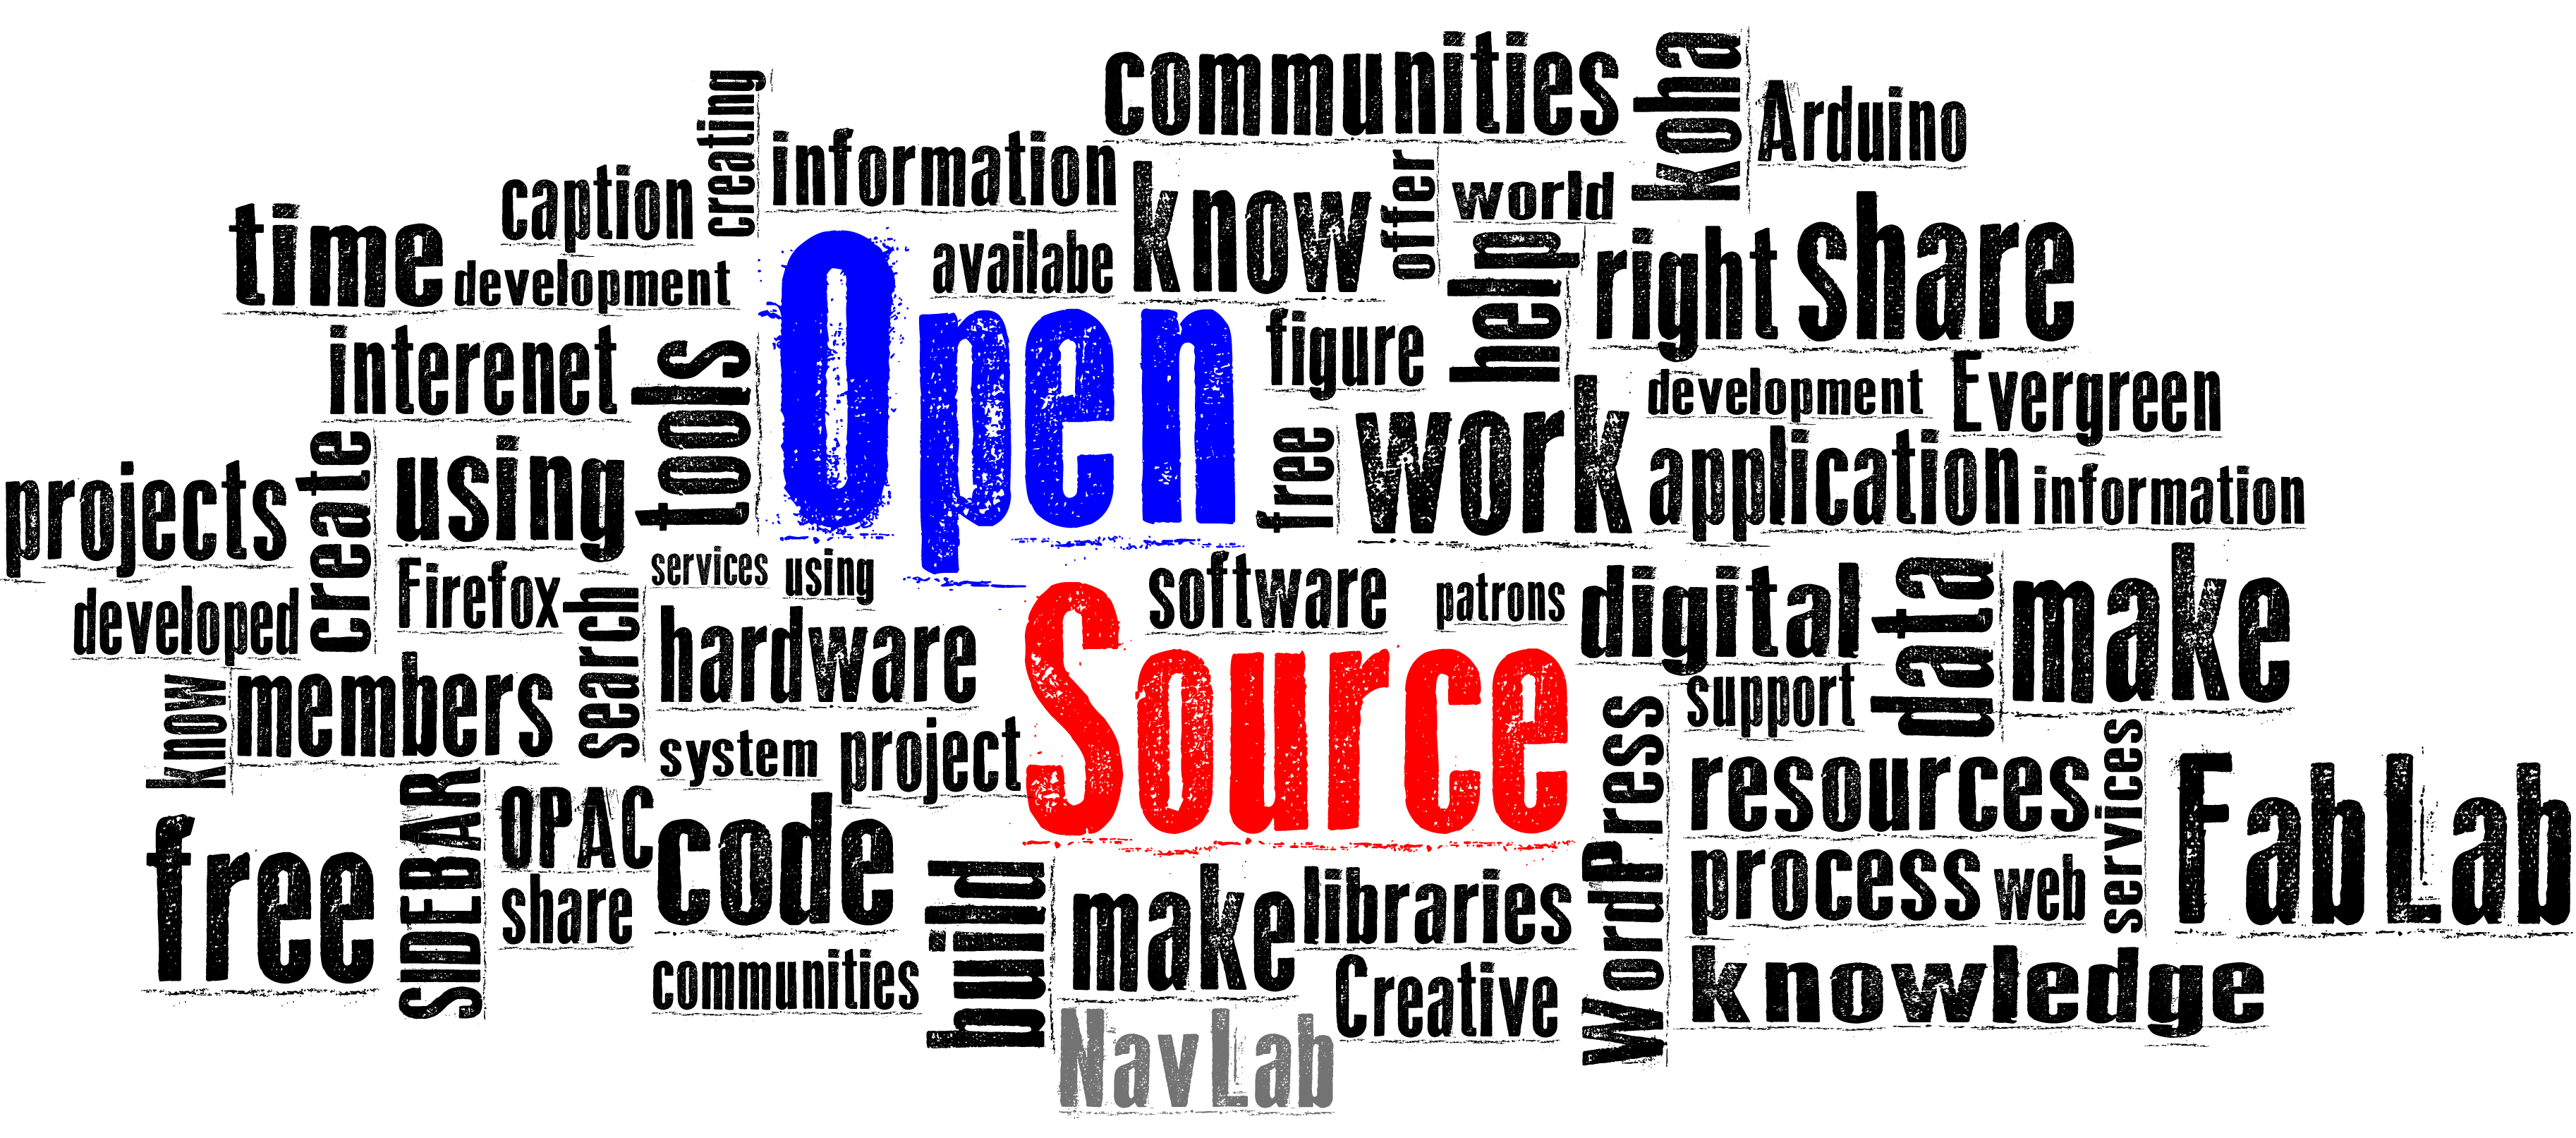 Open source1